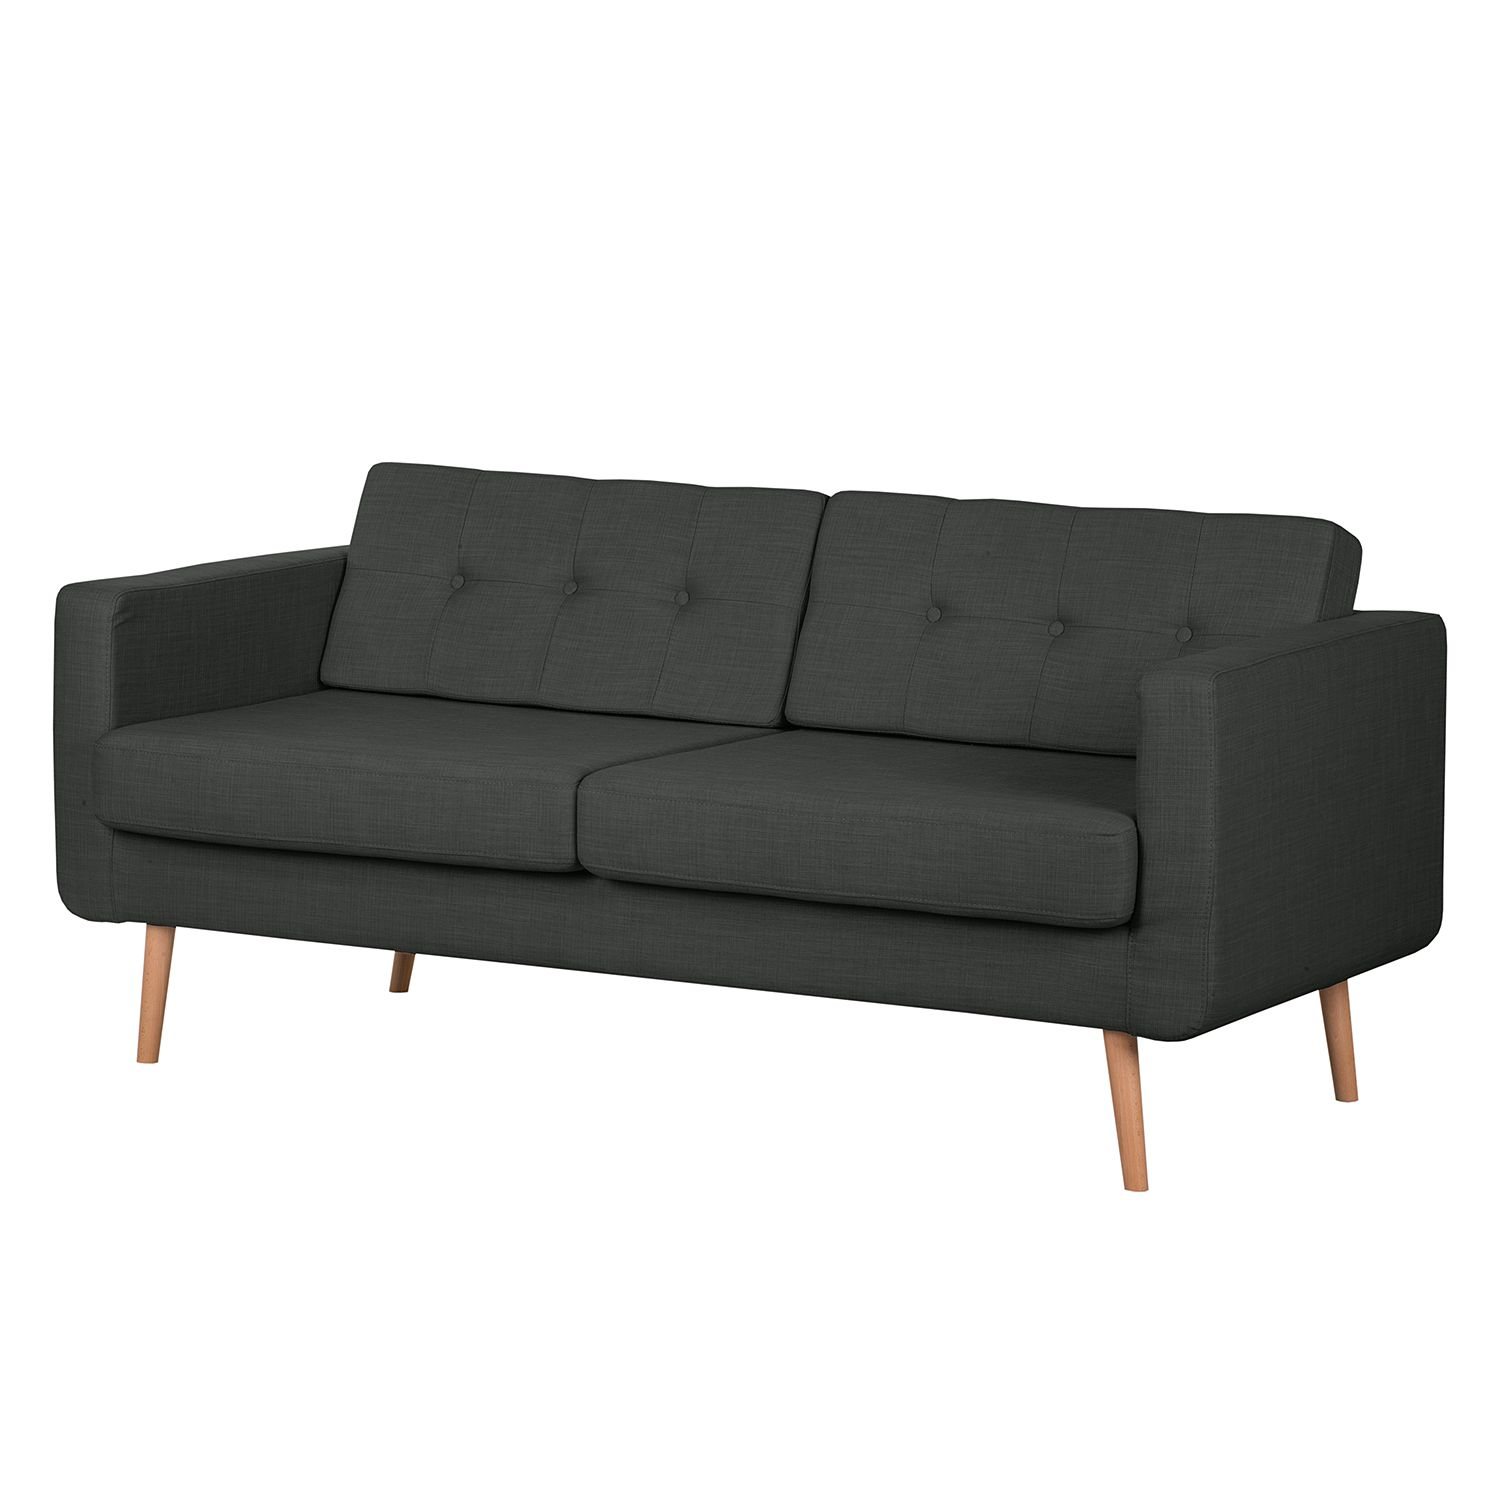 Sofa Aira I (3-Sitzer) – Webstoff – Anthrazit, kollected by Johanna online bestellen